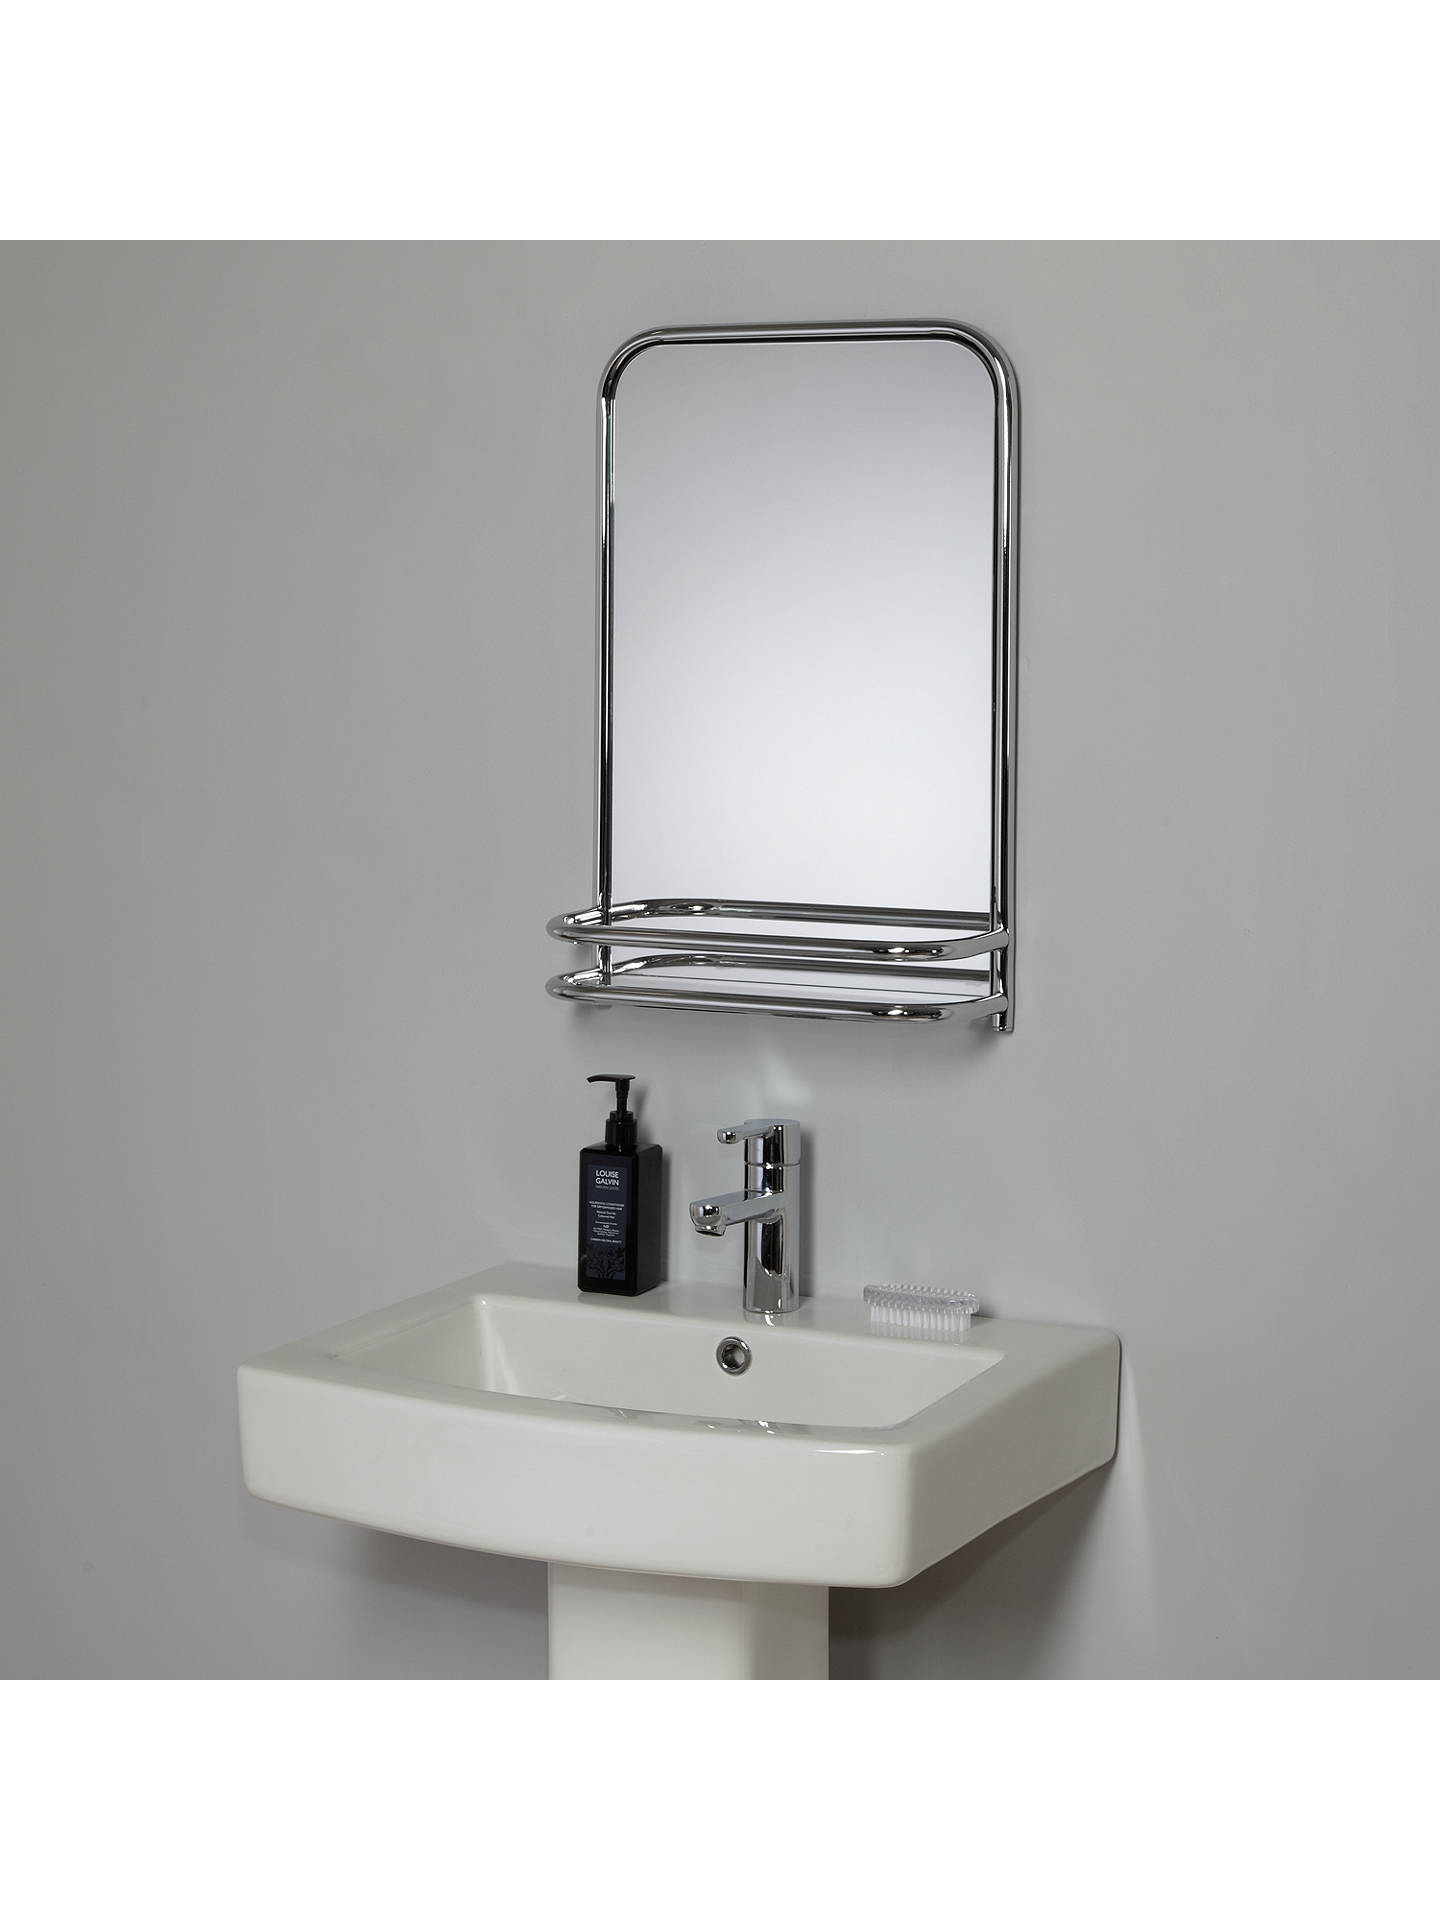 john lewis restoration bathroom wall mirror with shelf at. Black Bedroom Furniture Sets. Home Design Ideas